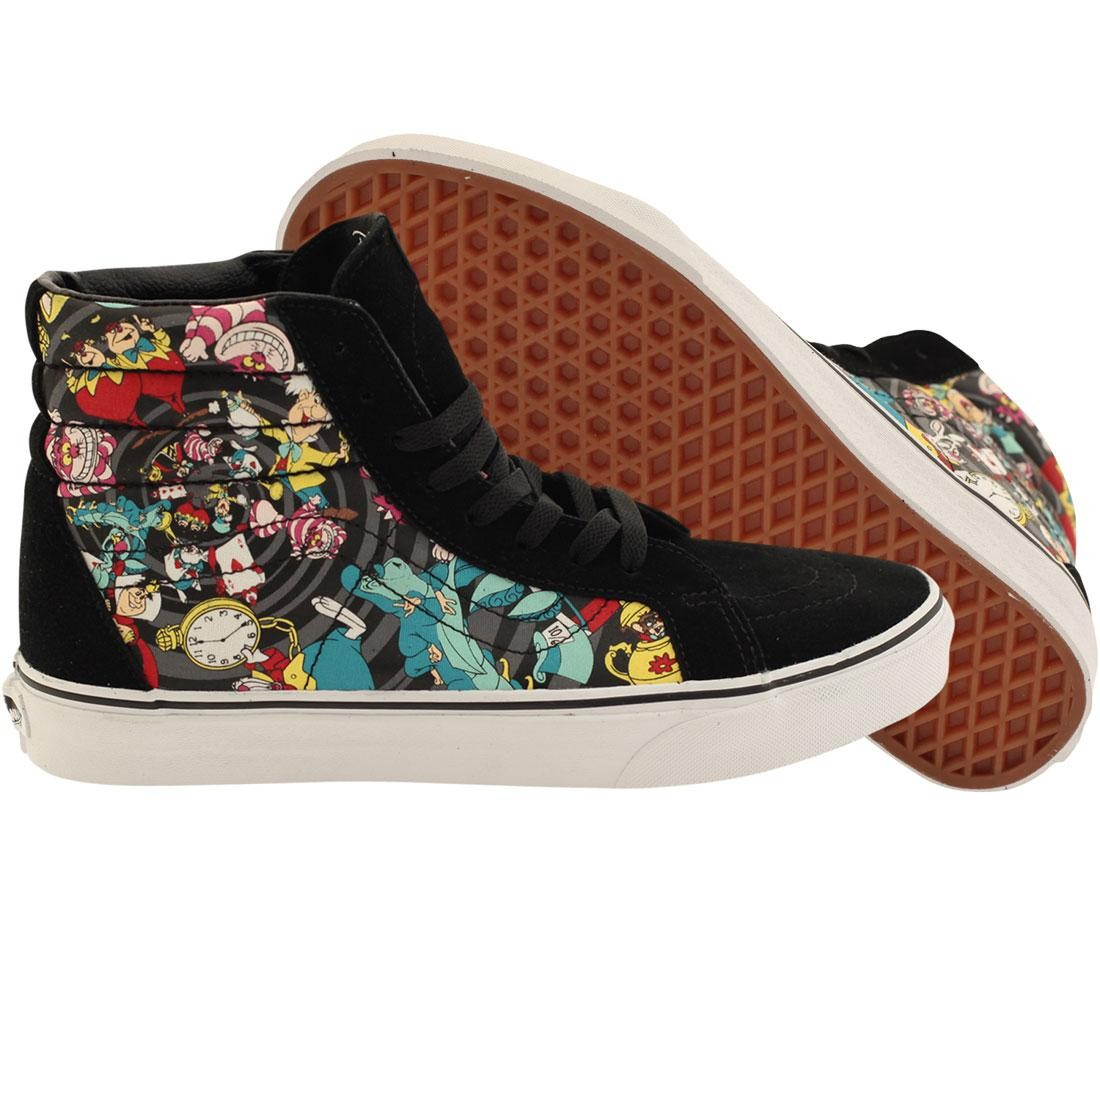 Vans x Disney Mens Sk8-Hi Reissue - Alice In Wonderland Rabbit Hole black 2c905c918c425